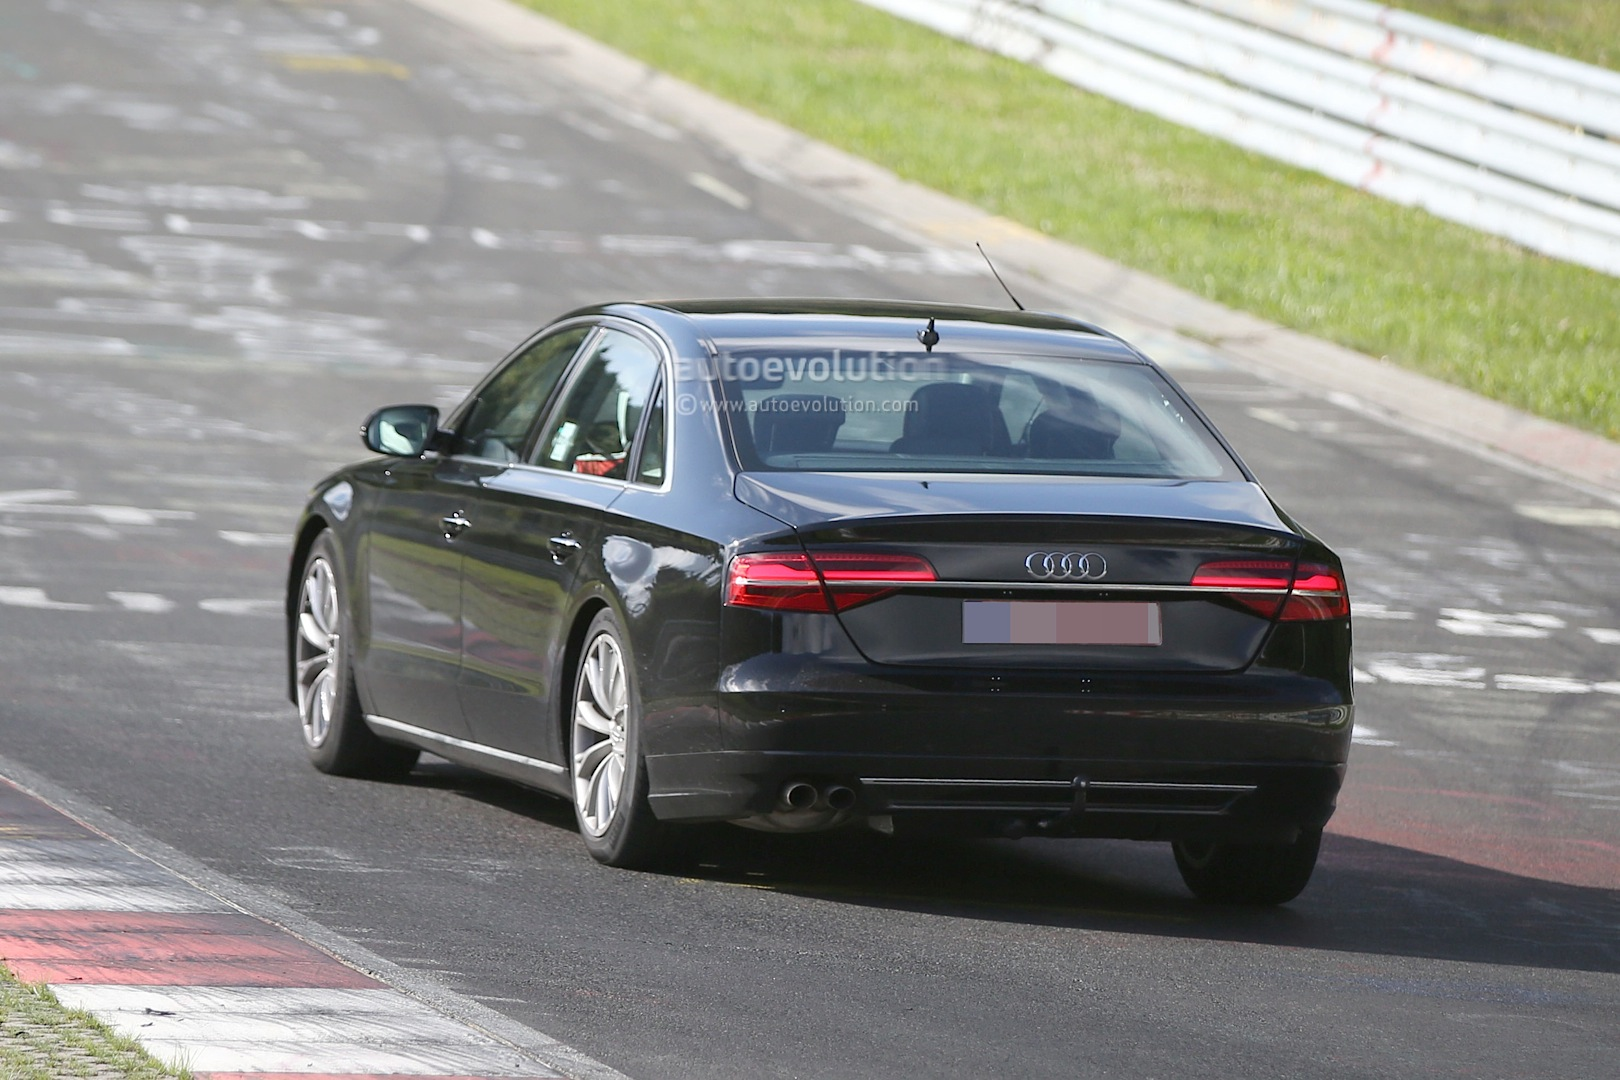 2018 audi w12.  w12 2017 audi a8 test mule at the nurburgring and 2018 audi w12